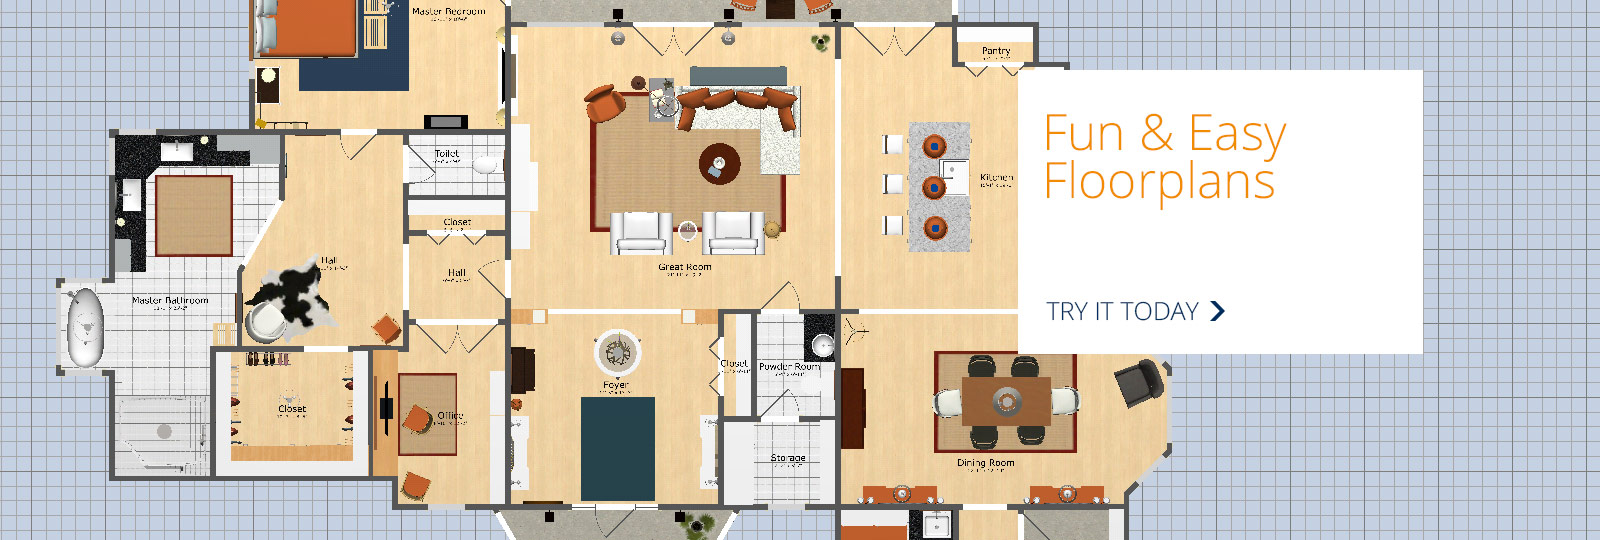 Fun and Easy Floorplans. Visualize Your Rooms